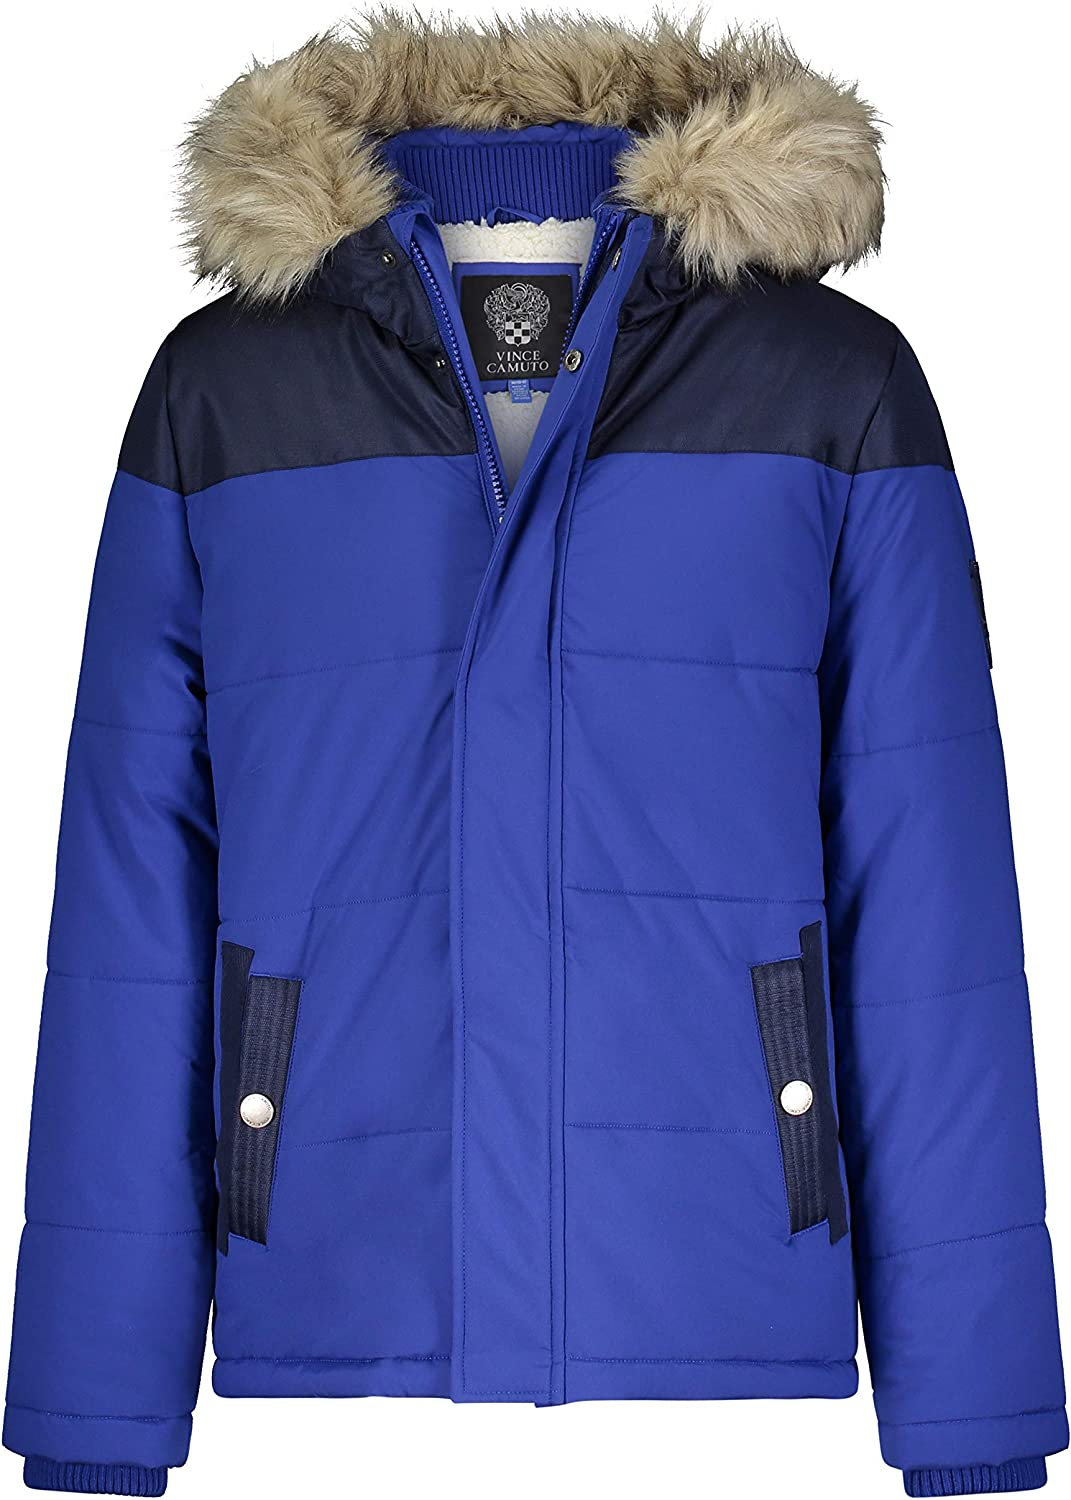 Vince Camuto Boys' Warm Puffer Genuine Jacket Hooded Oakland Mall Coat